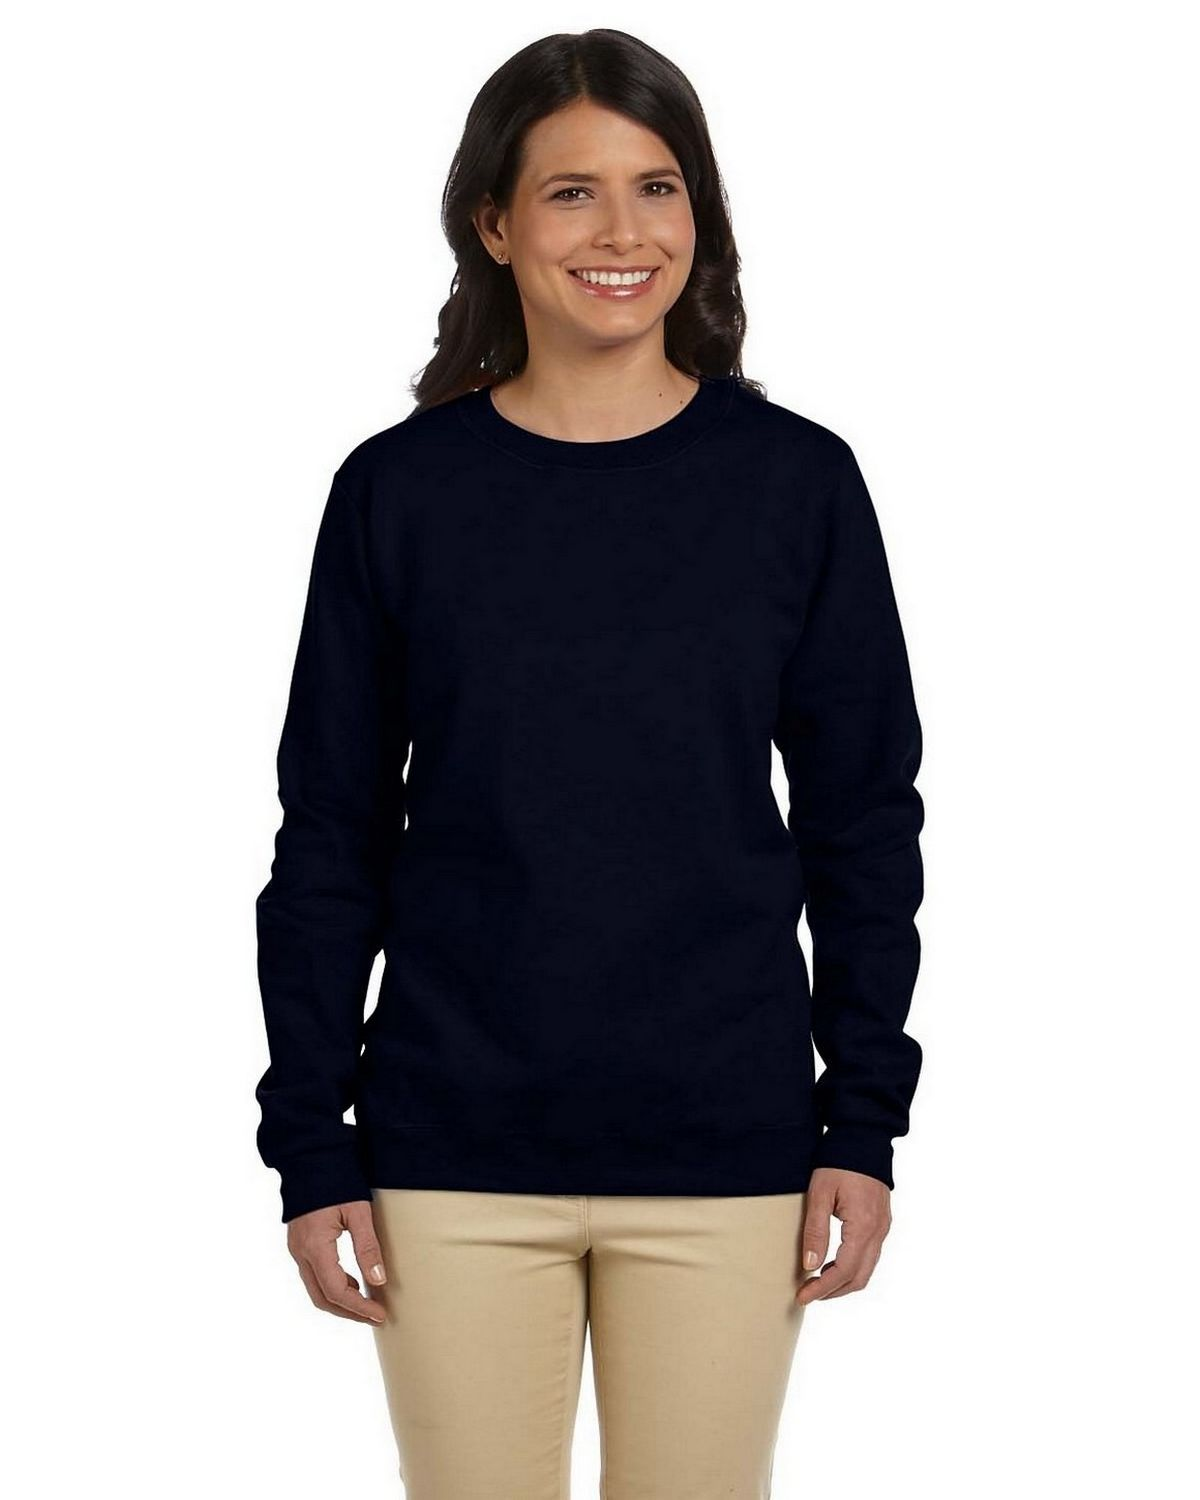 Gildan G180FL Ladies Heavy Blend Fleece Crew - Black - L G180FL